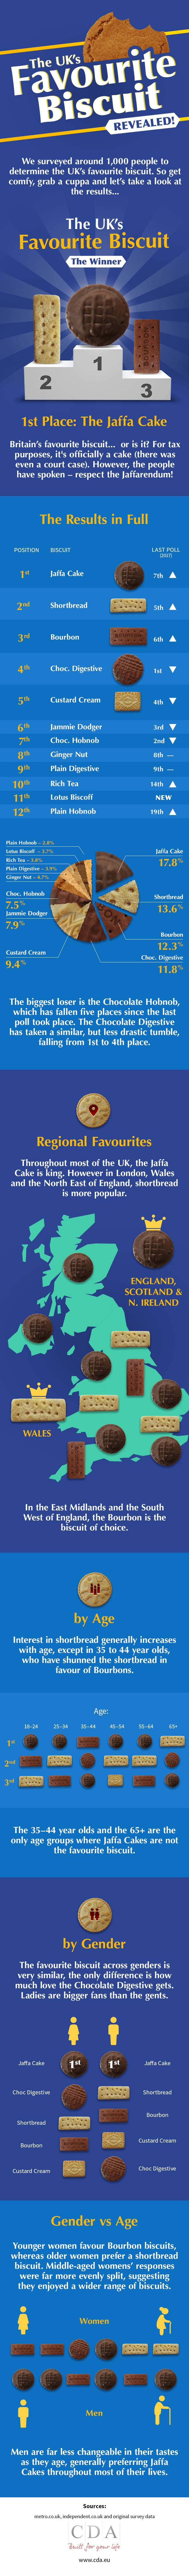 Jaffa Cake Is Britain's Favourite Biscuit, Even Though It Isn't Even A Biscuit